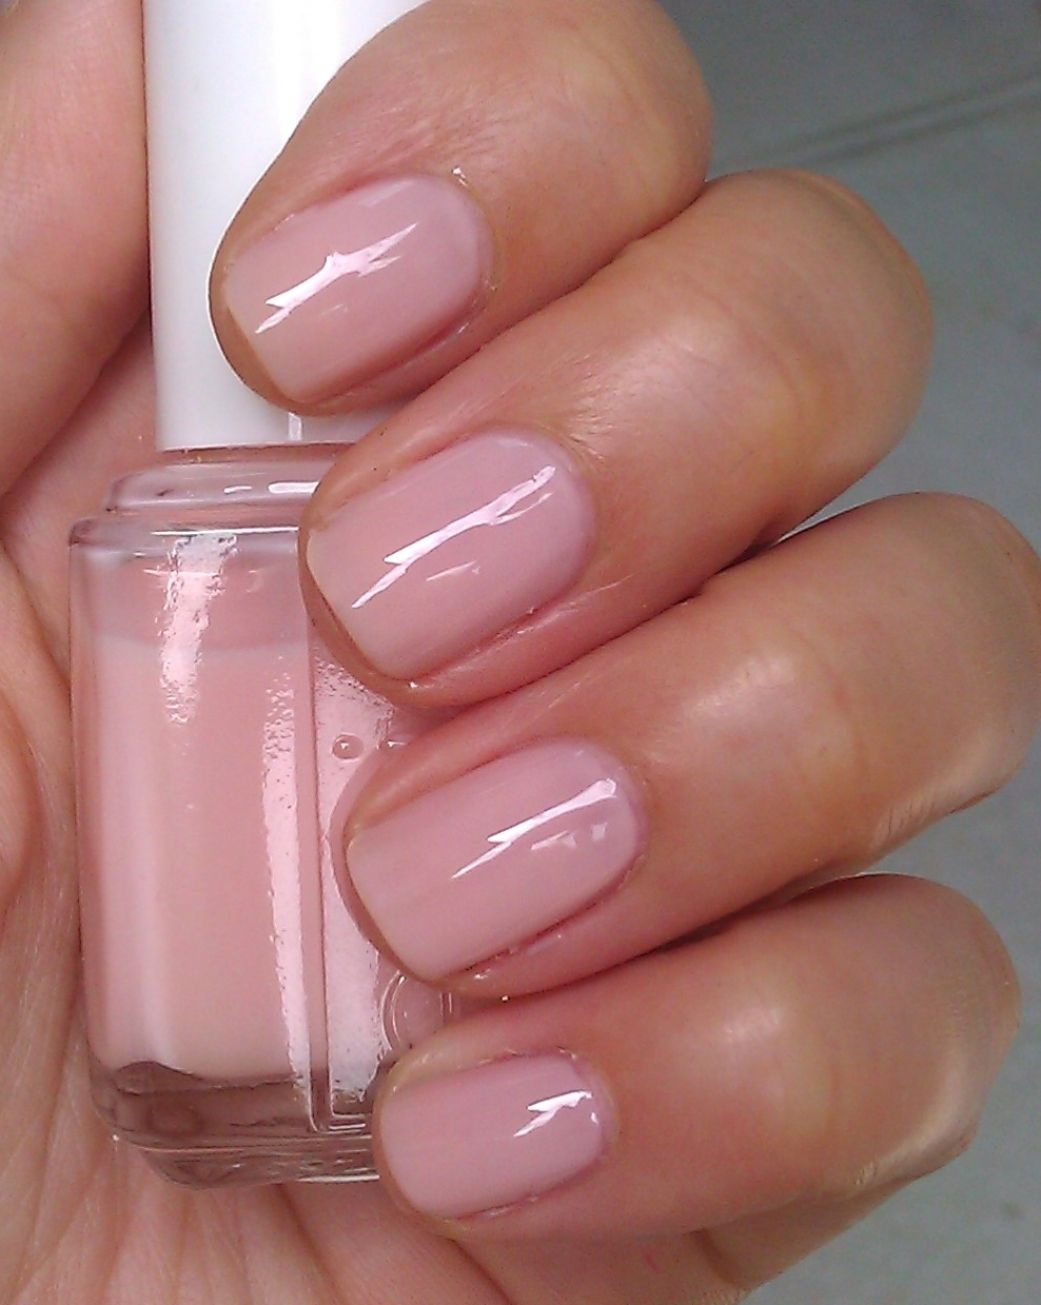 35 Trending Fall Nail Colors Of 2020 You Have To Try Out Beauty Home In 2021 Essie Pink Nail Polish Essie Nail Polish Colors Essie Nail Polish